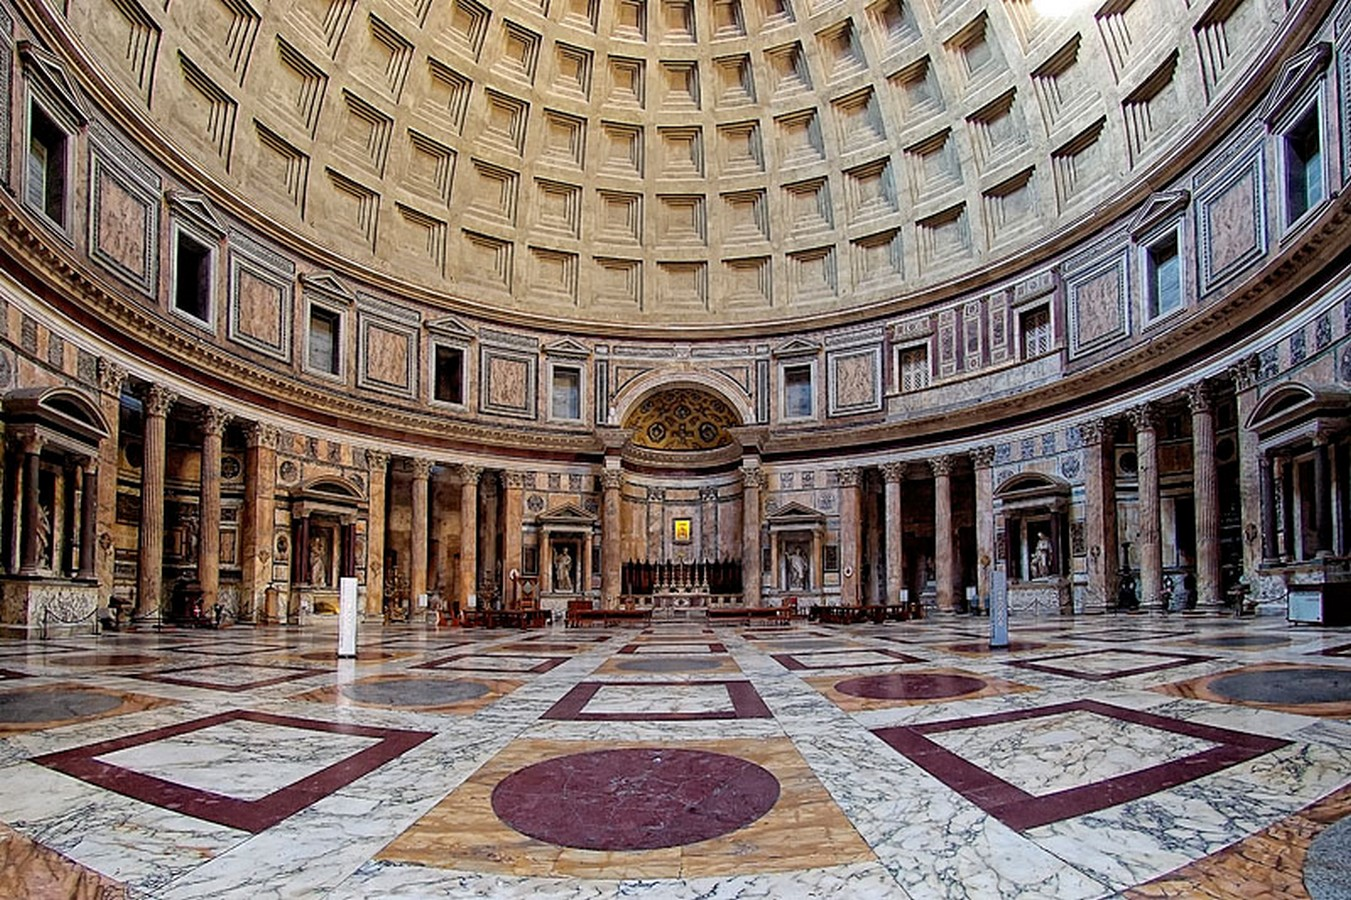 10 Buildings that pioneered architectural styles in the history of architecture - Sheet4